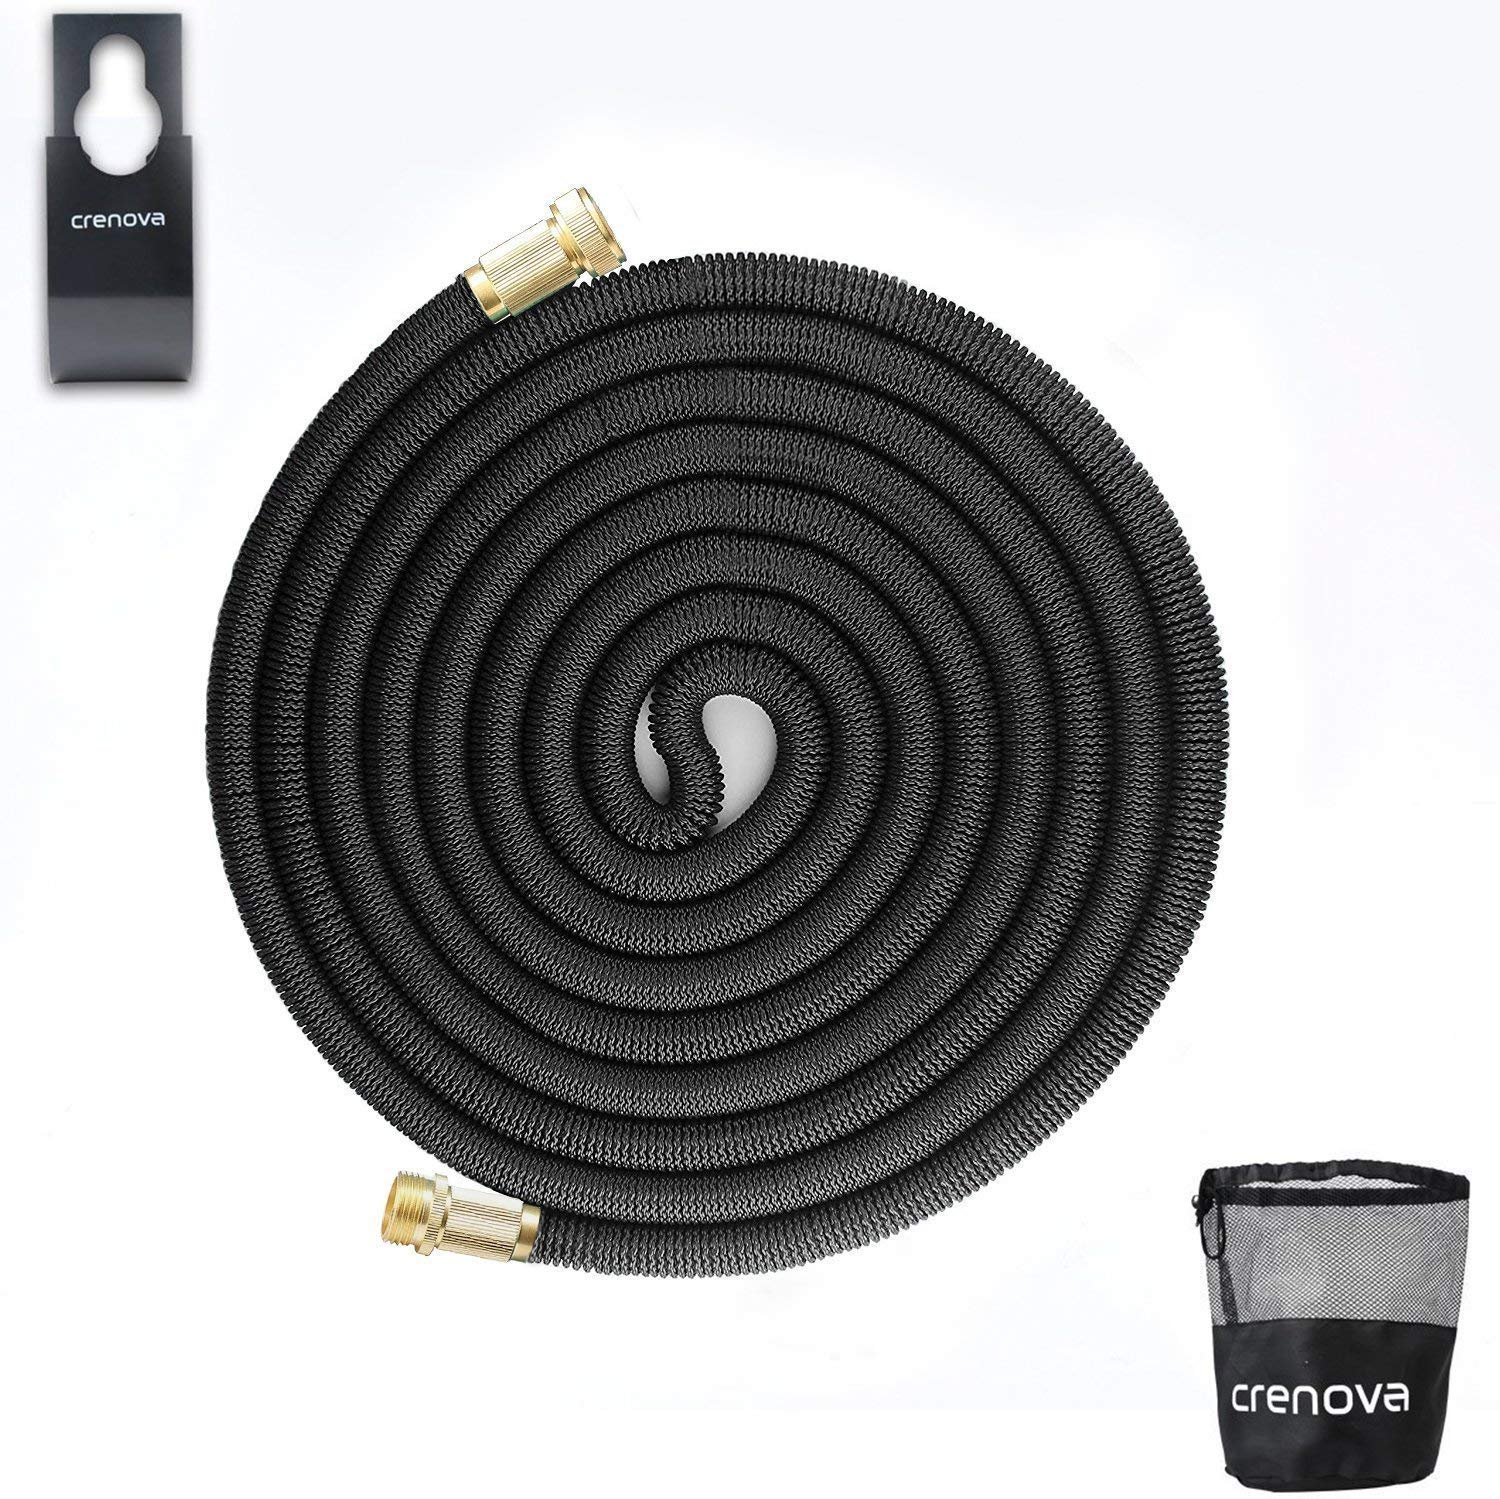 Crenova 100ft Garden Hose Expandable Hose water hose with Double Latex Core 3//4 Solid Brass Connector and Extra Strength Textile come with holder Suitable for Garden Watering and Car Washing